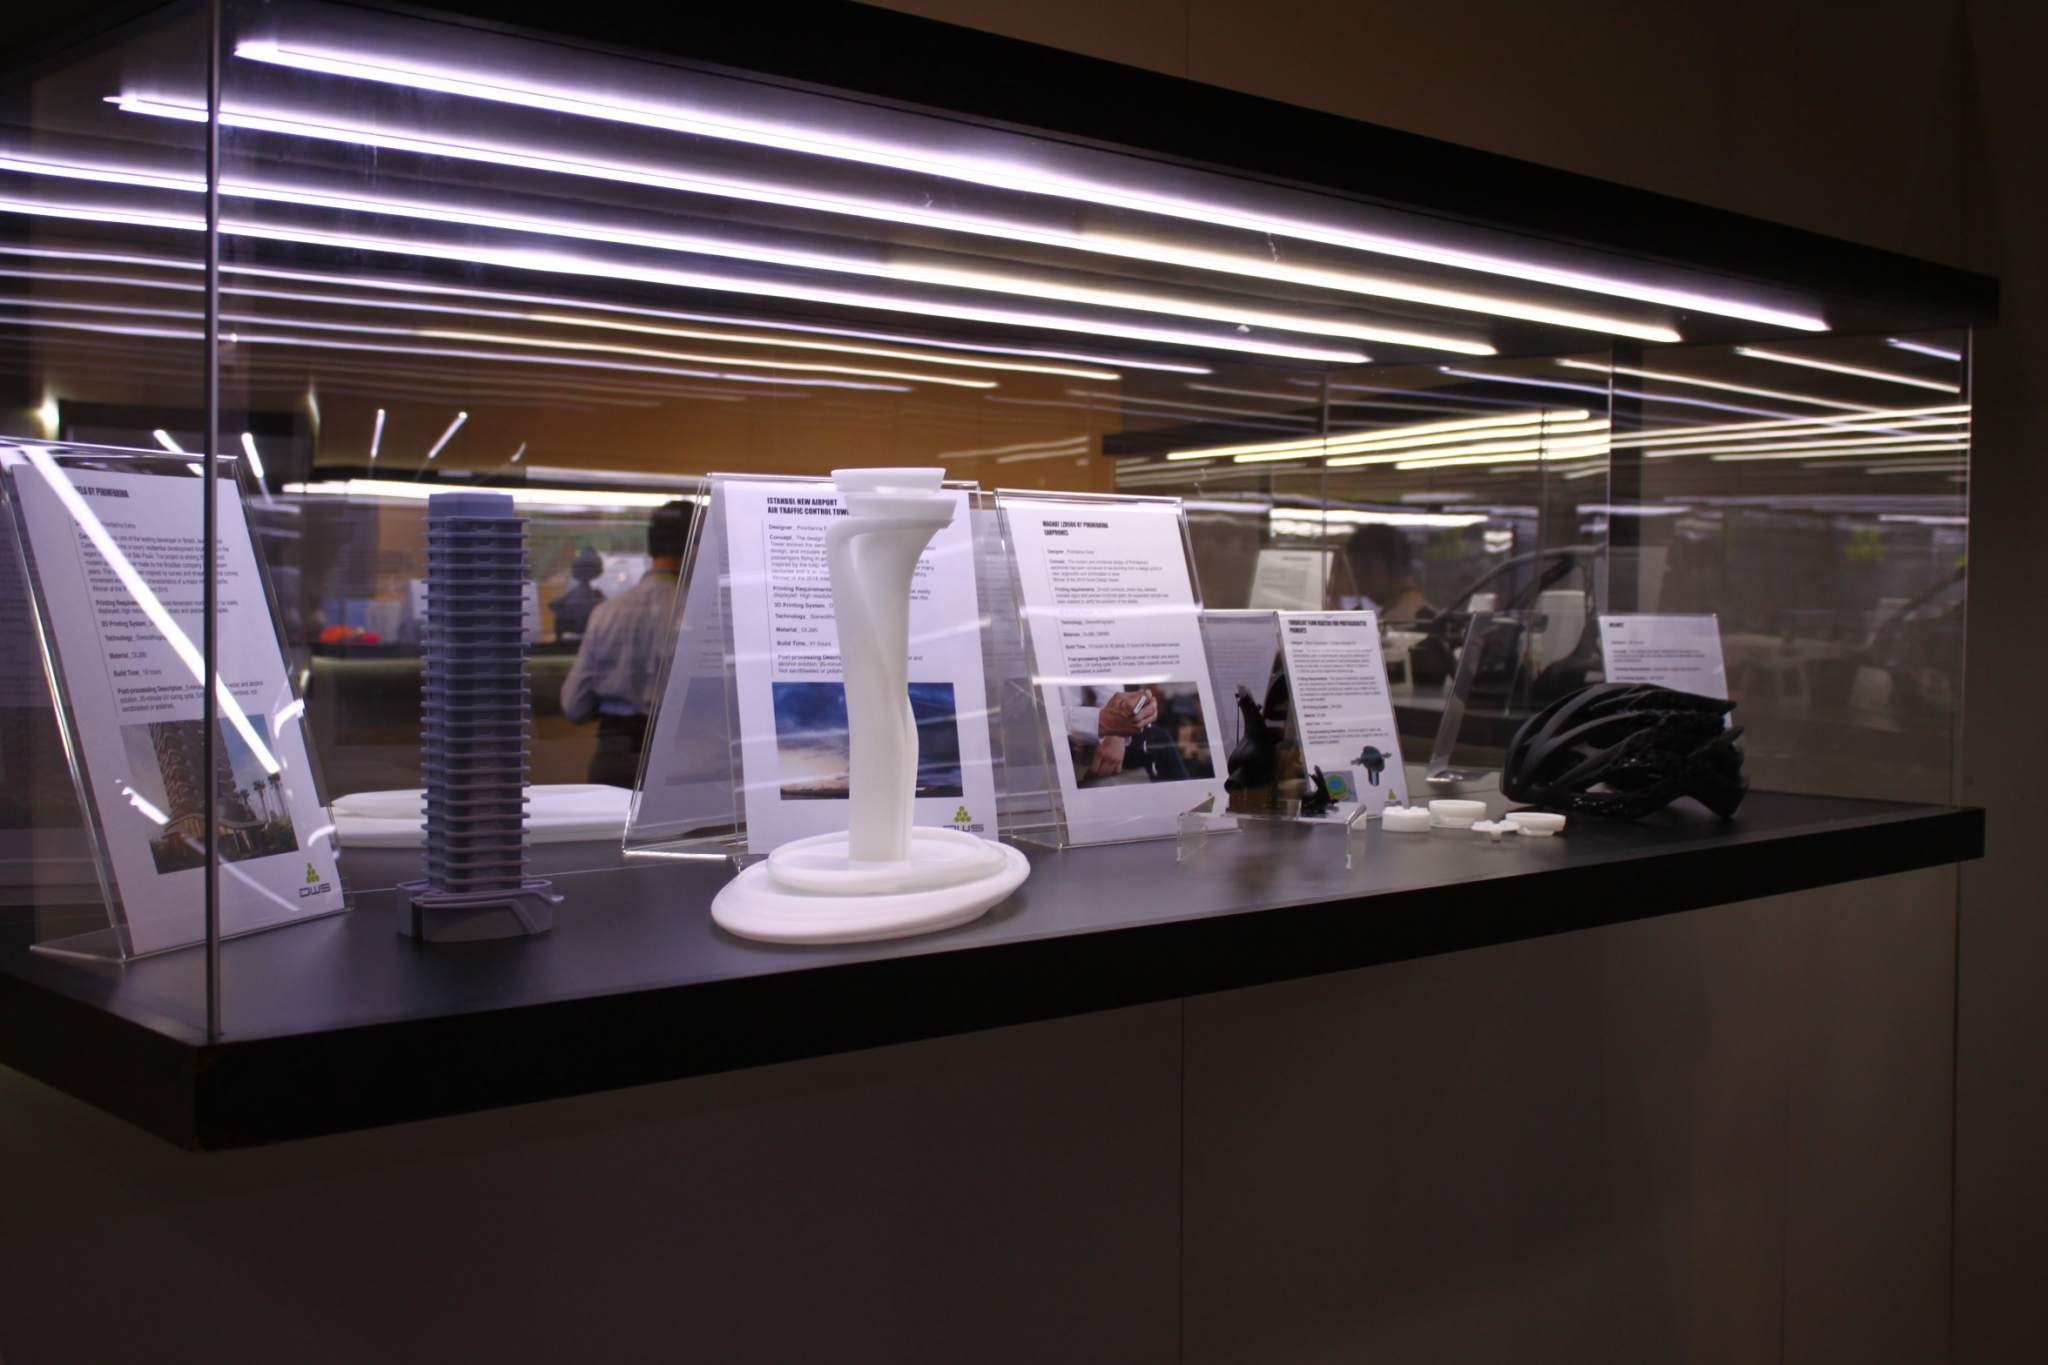 A display case at DWS's CES booth featuring the Cyrela design and others. Photo via DWS.